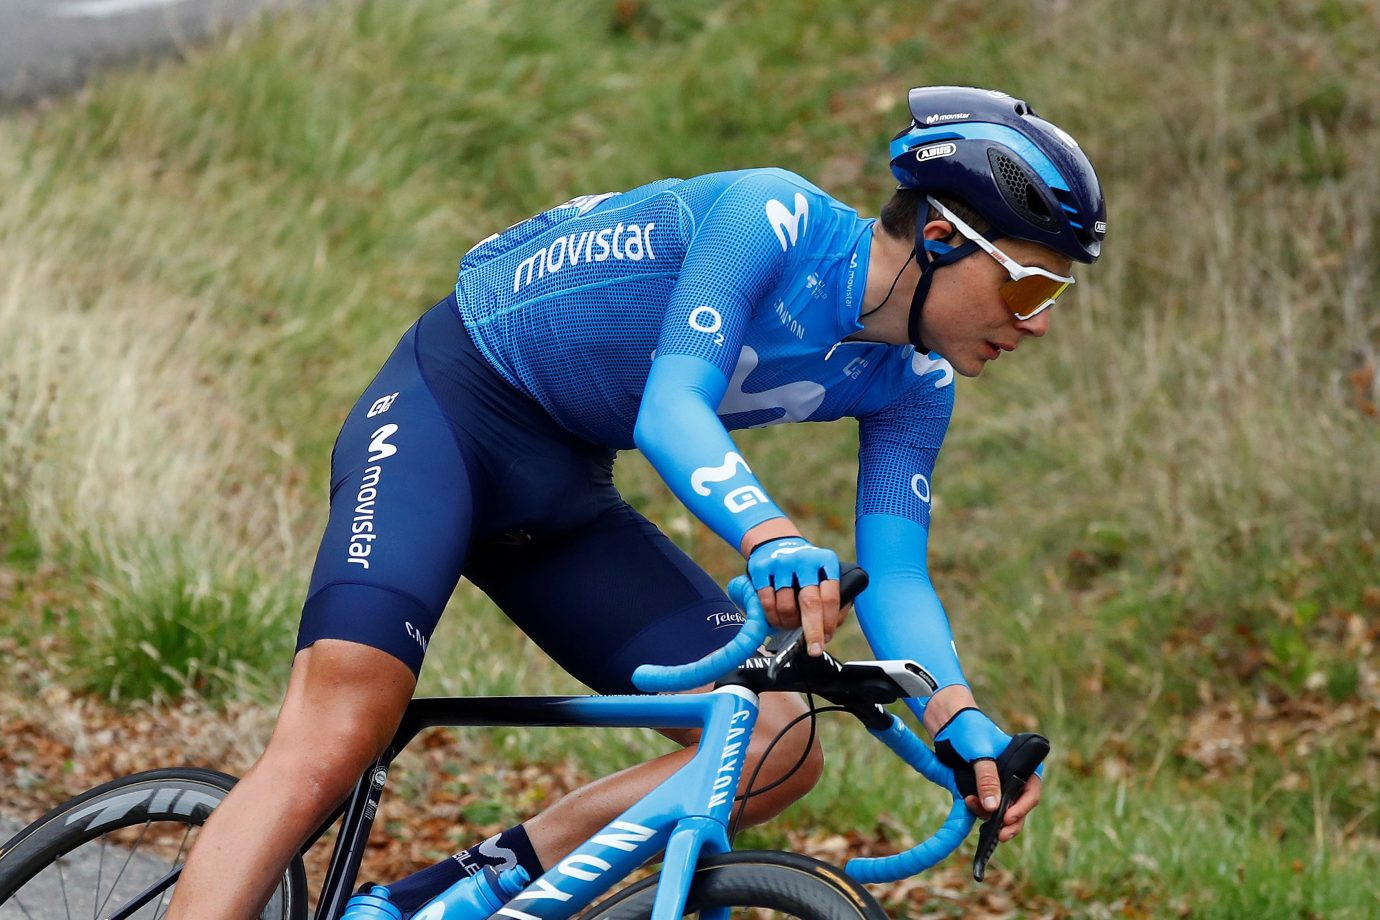 Imagen de la noticia 'Jacobs, Movistar Team unscathed on day two in Belgium before crucial ITT'